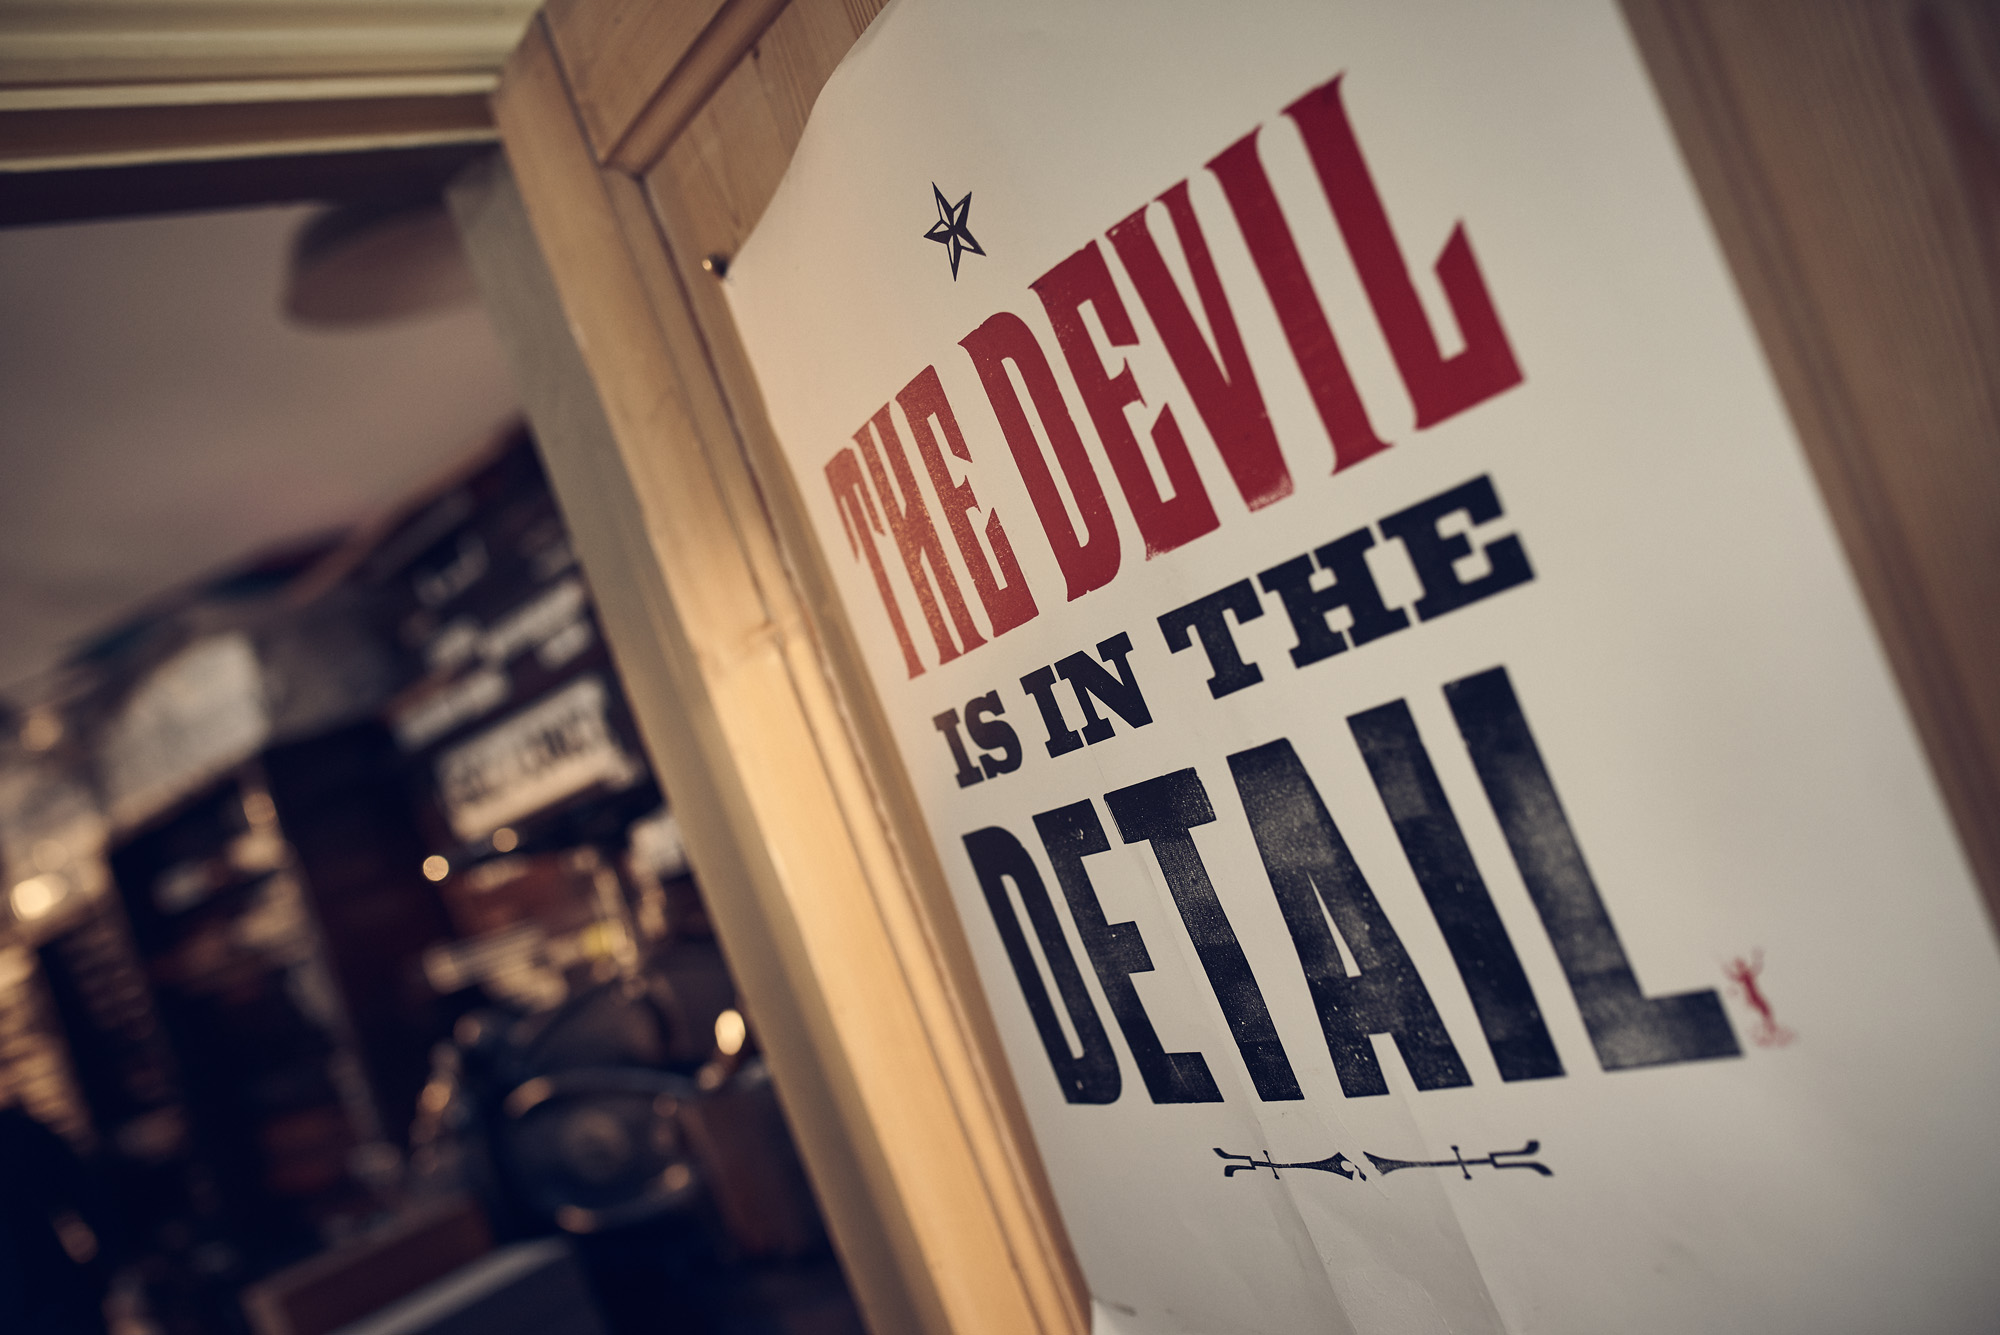 The devil is in the detail poster